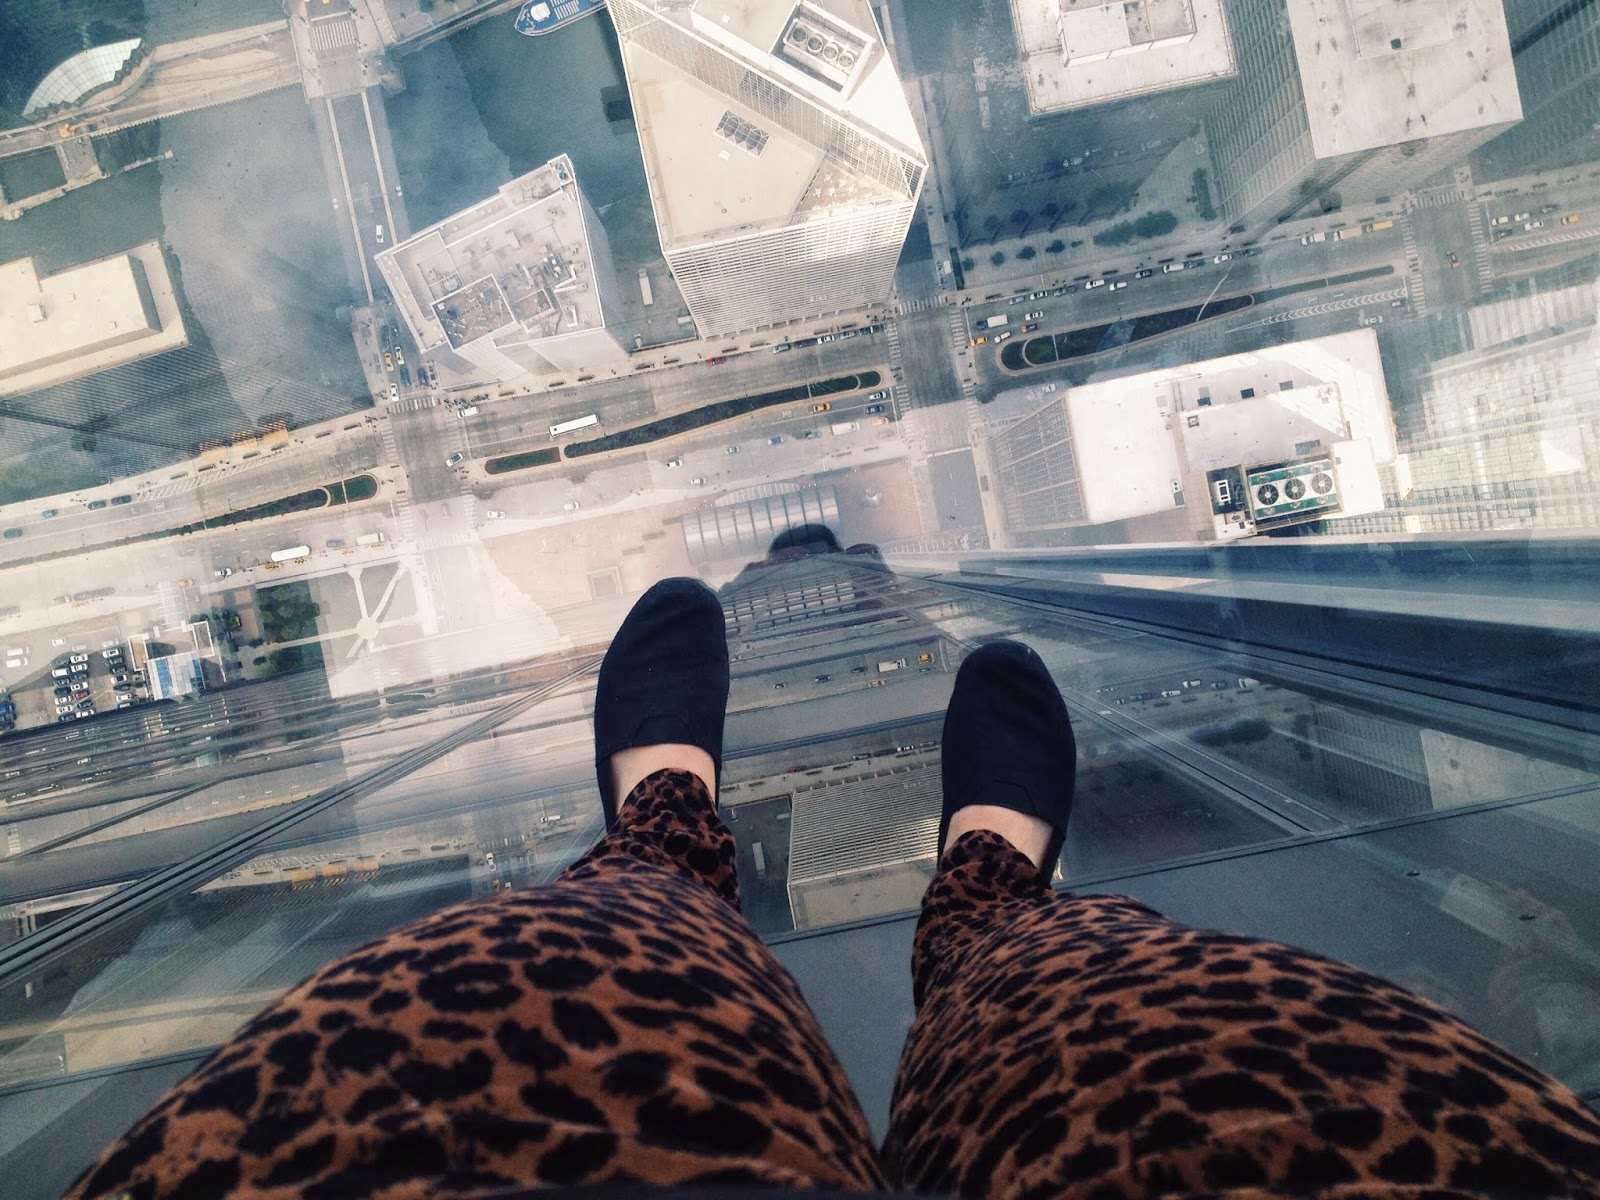 Essay on fear of heights